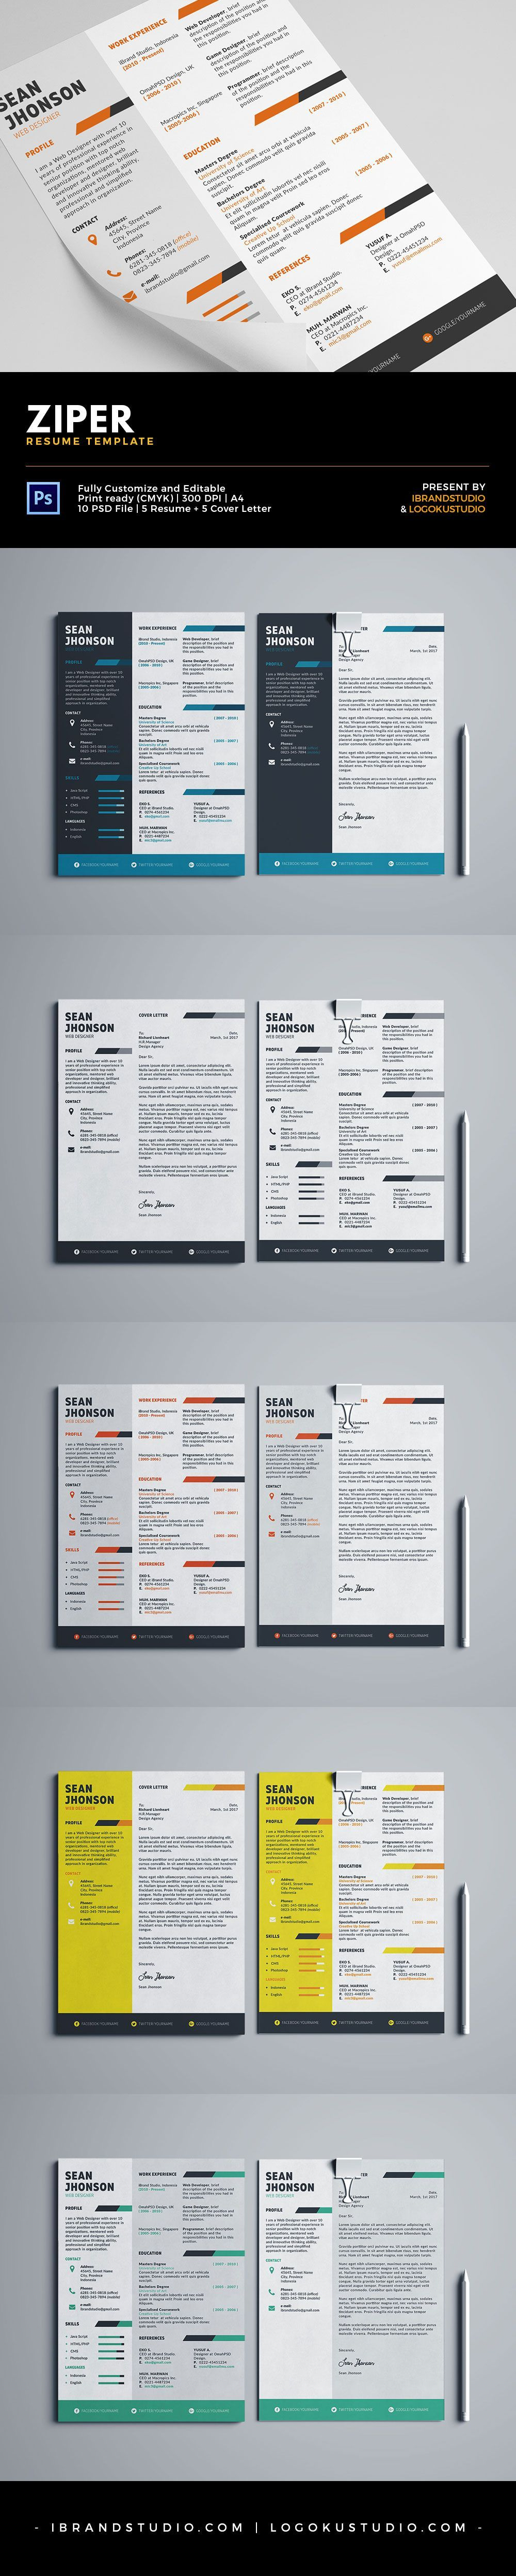 academic cover letter sample%0A cover letter for resume example Free Ziper Resume Template and Cover Letter  Styles PSD